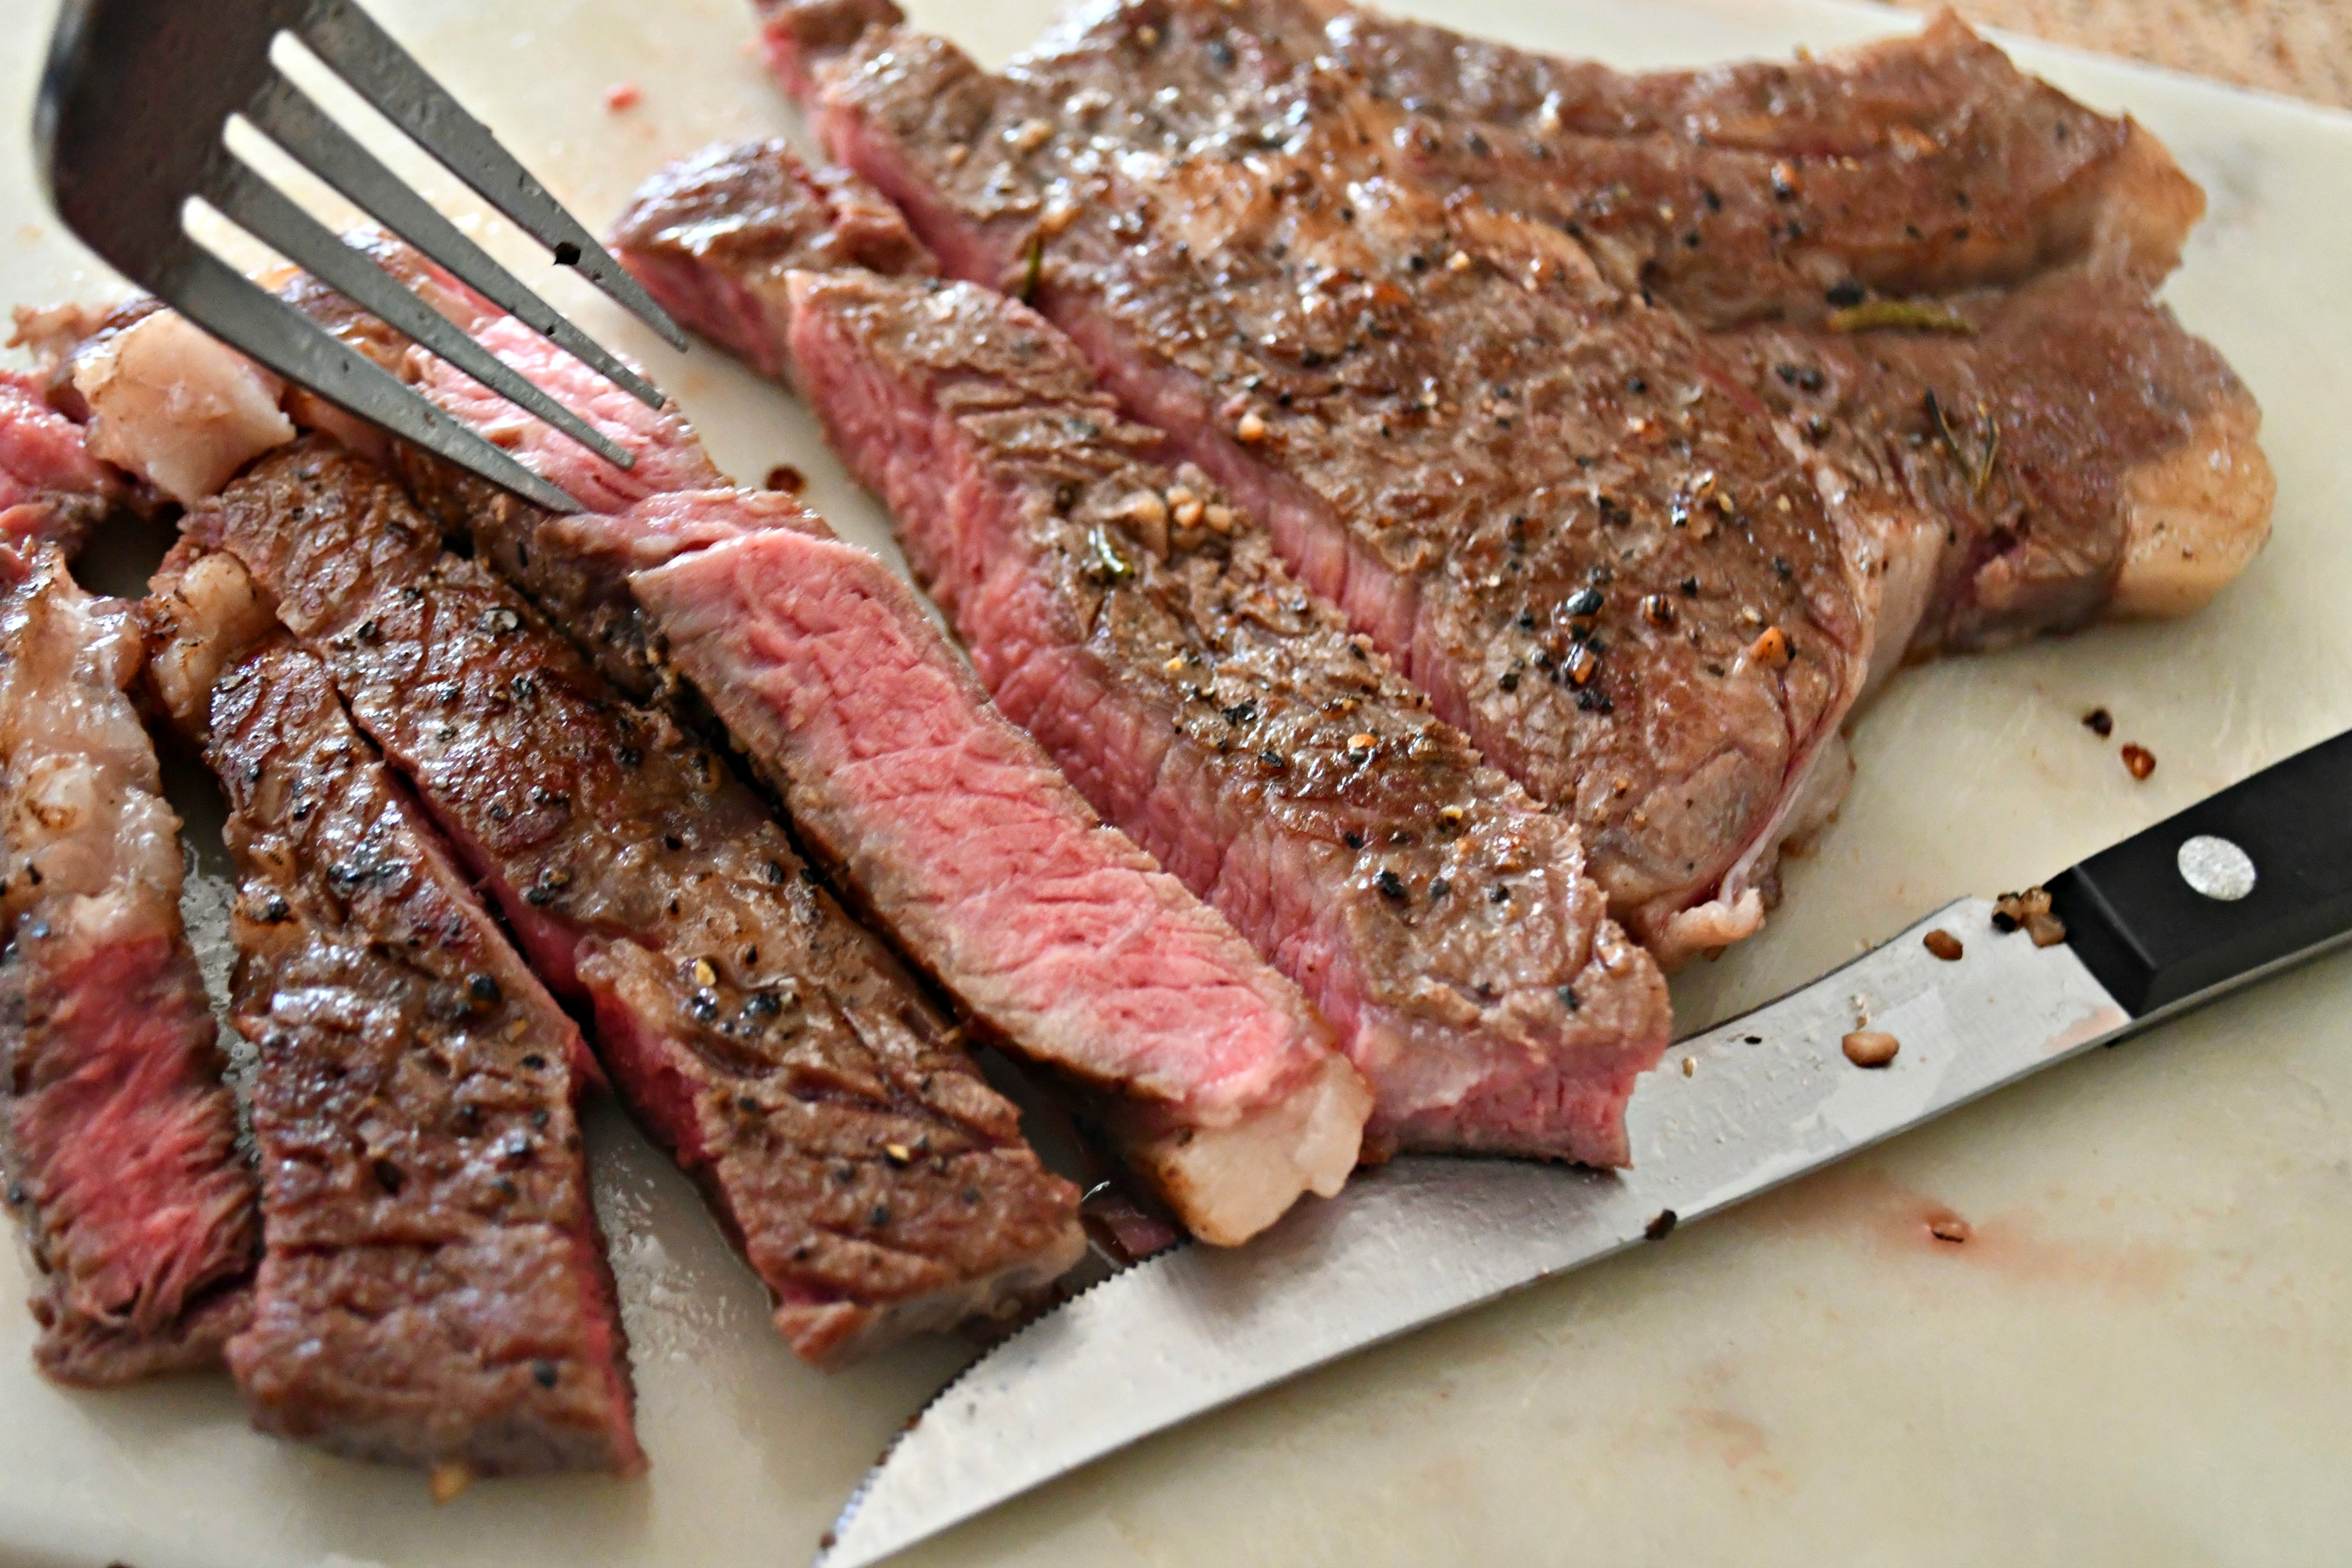 Make the Best Steak Using a Sous Vide! Sliced and served on a cutting board